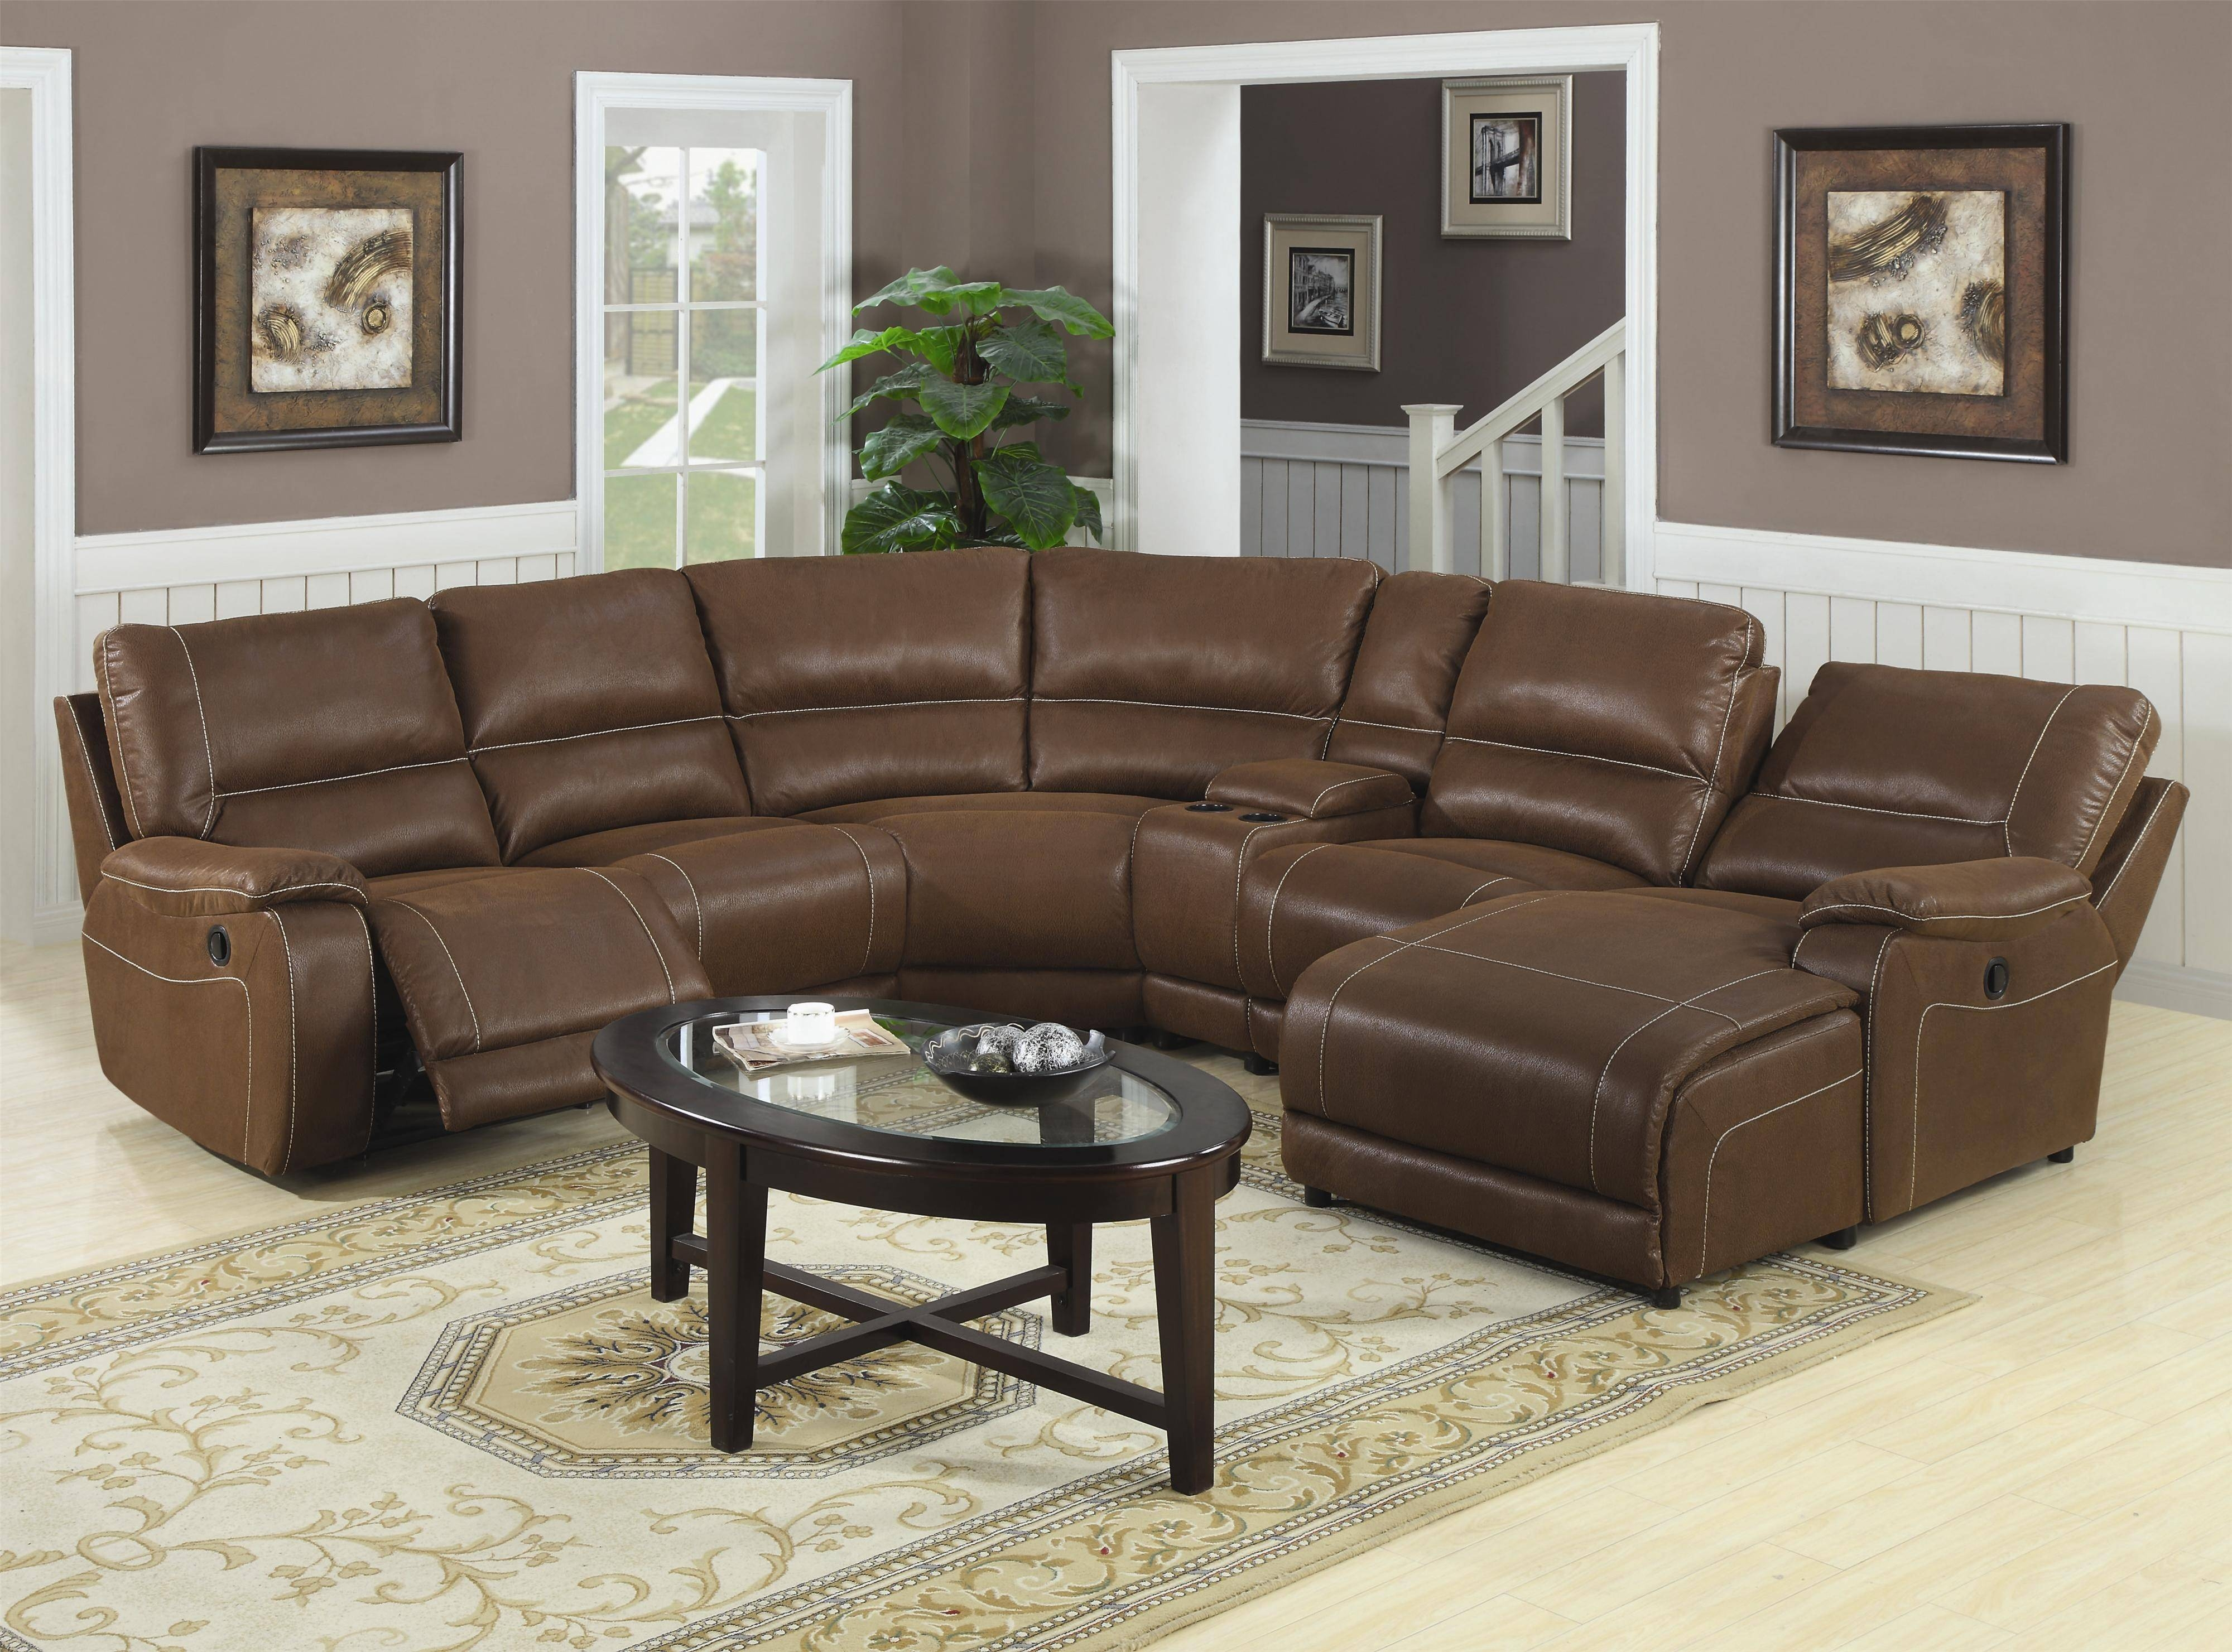 Furniture: Incredible Style Sectional Reclining Sofas For Your within Curved Sectional Sofa With Recliner (Image 15 of 30)